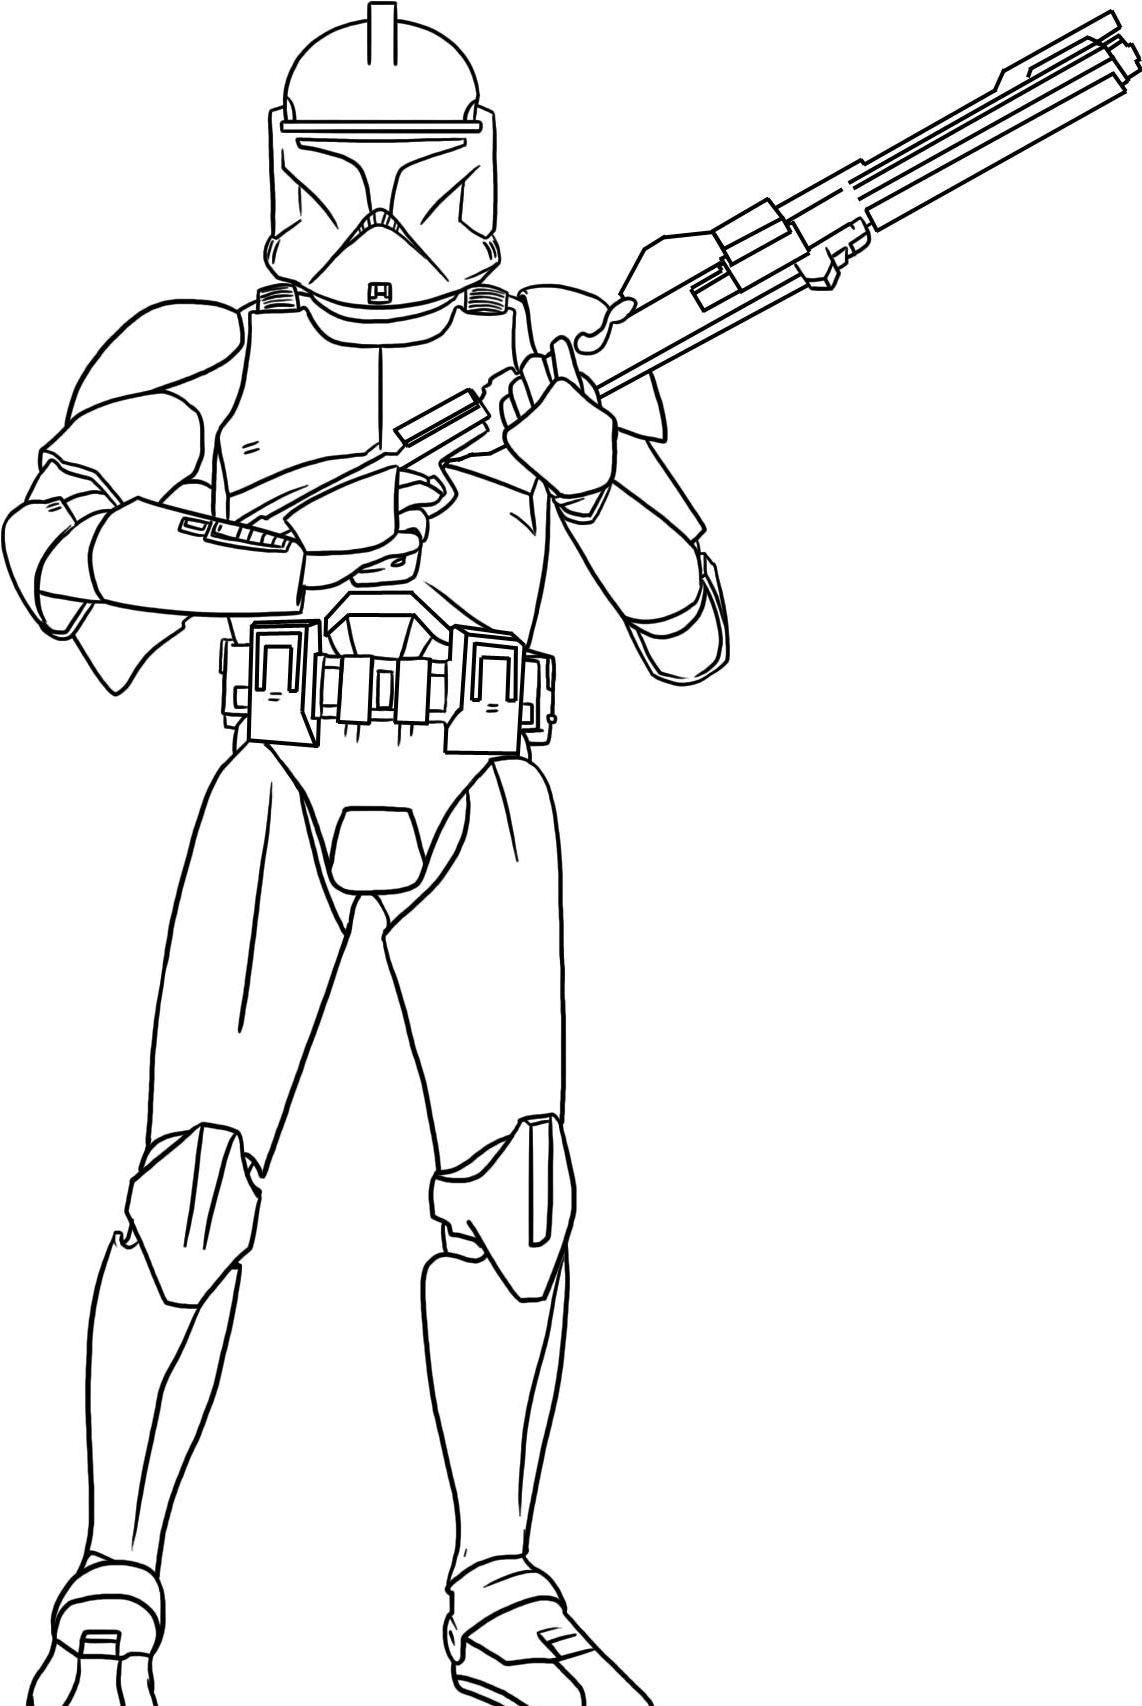 One Of The Soldiers Star Wars Coloring Pages Star Wars Clone Wars Dibujos Para Colorear Star Wars